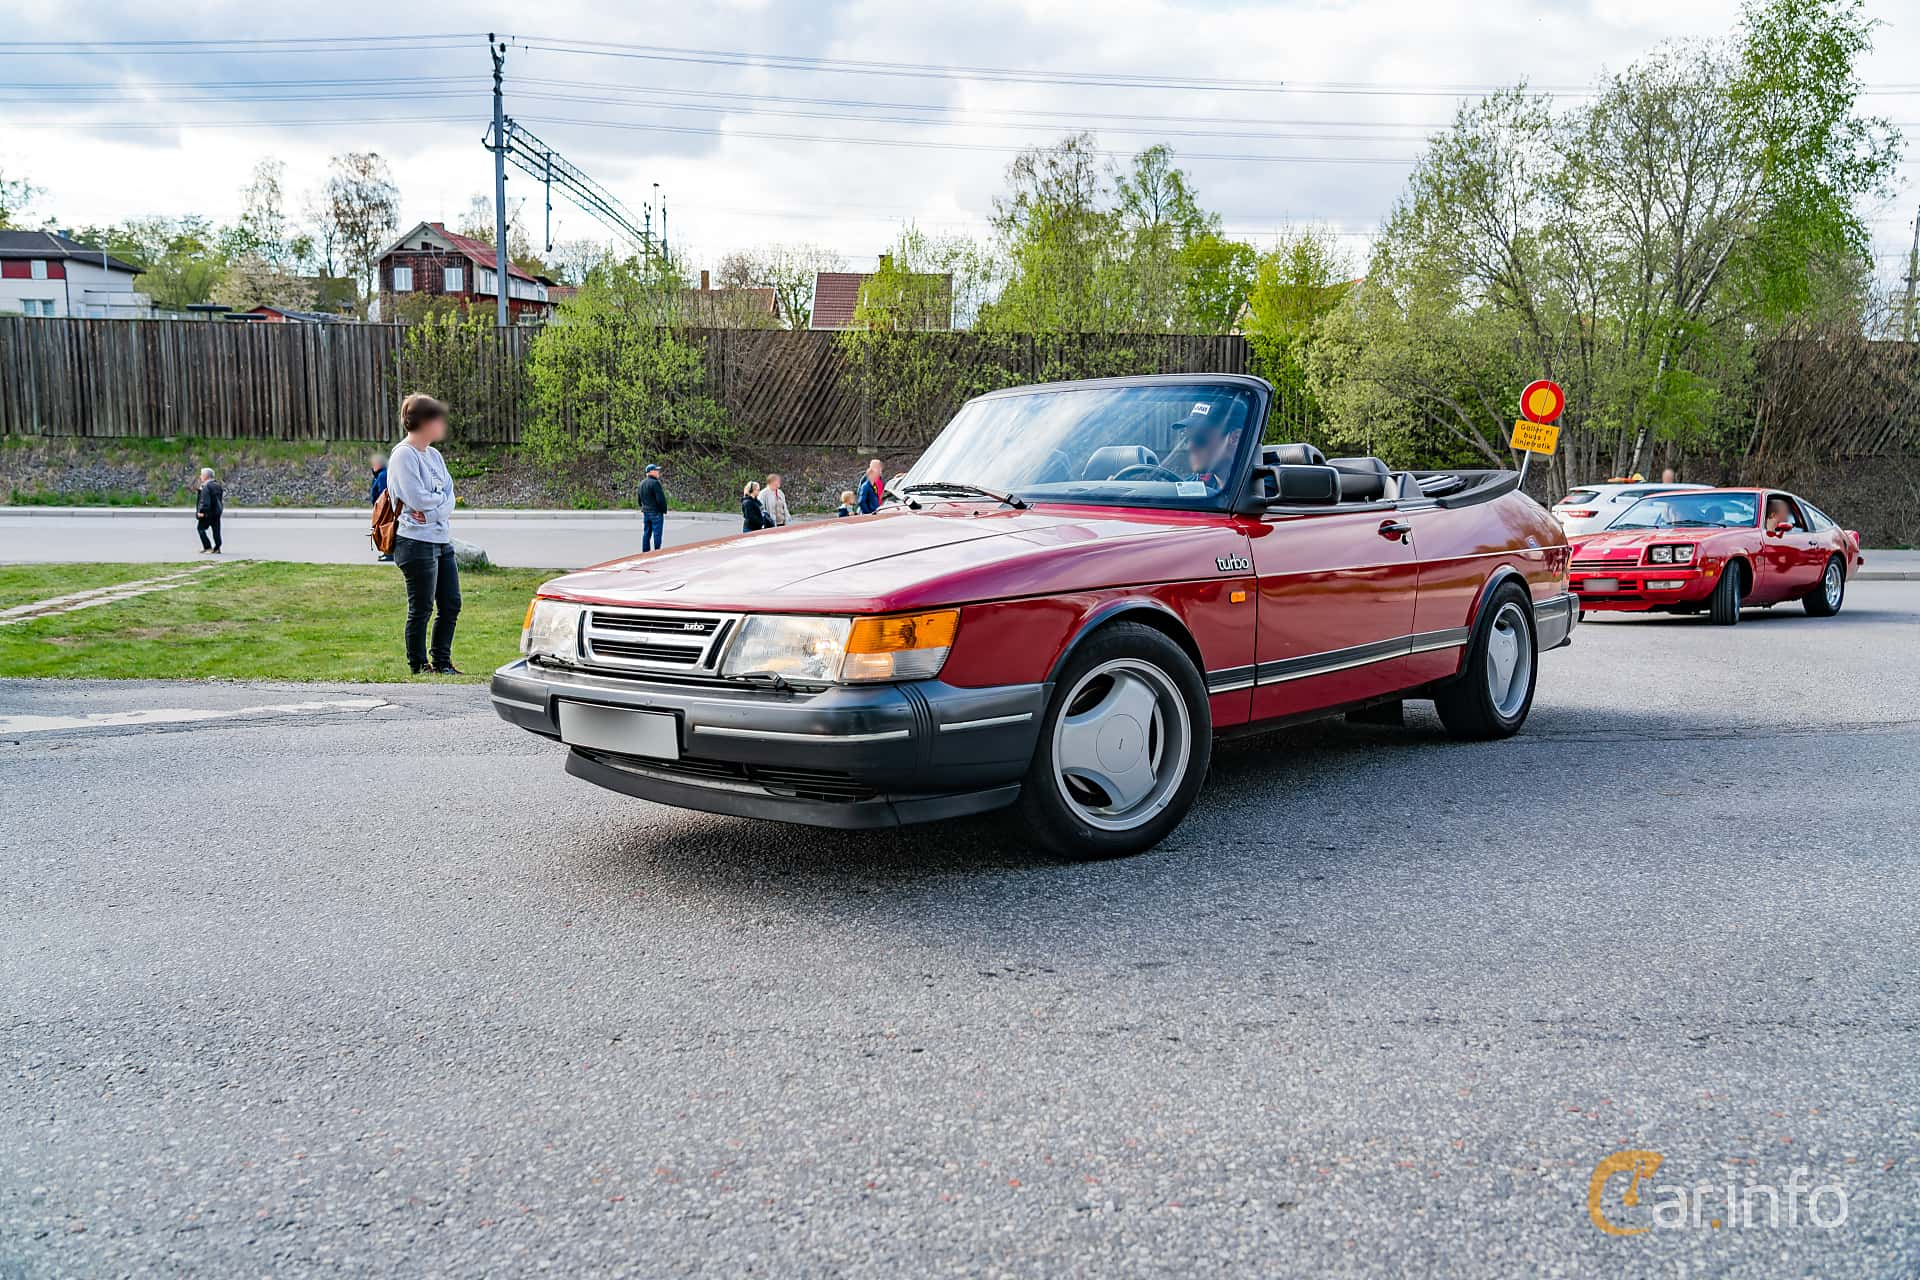 Saab 900 Convertible 2.0 Manual, 160hp, 1990 at Vårcruising Järna 2019